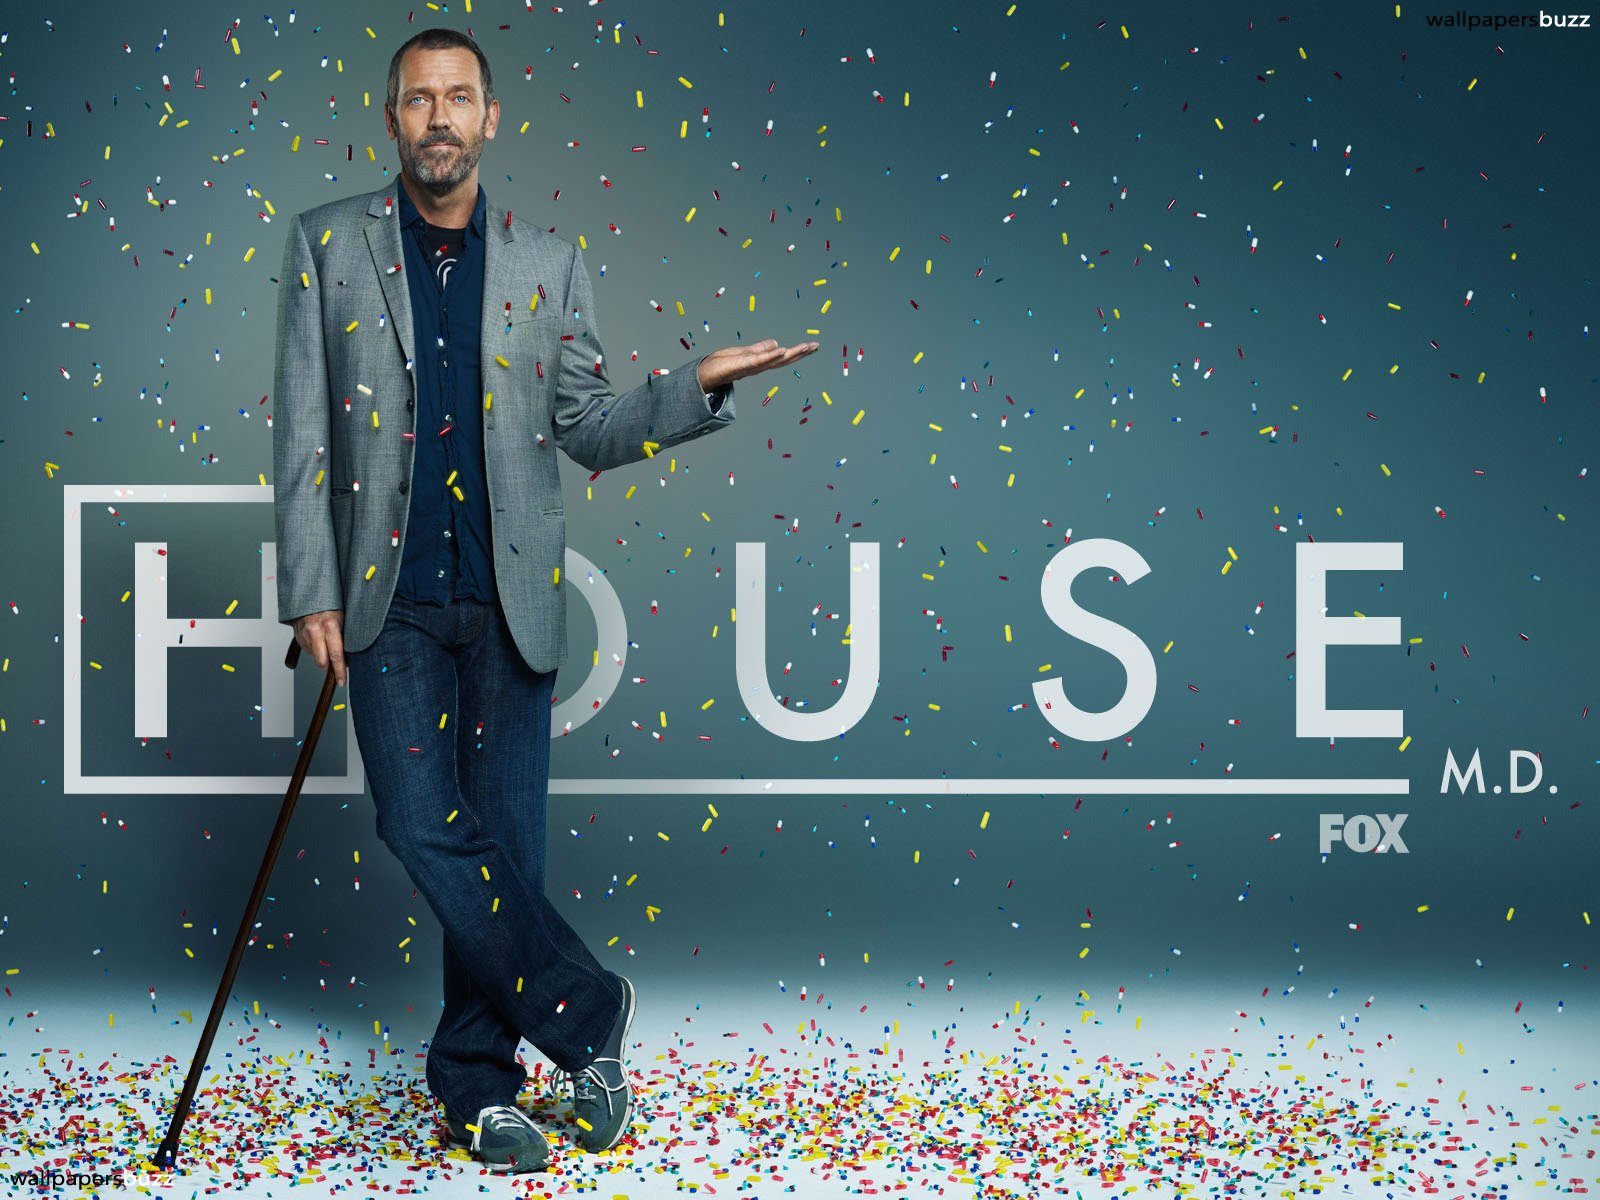 Gregory House and vicodin HD Wallpaper 1600x1200